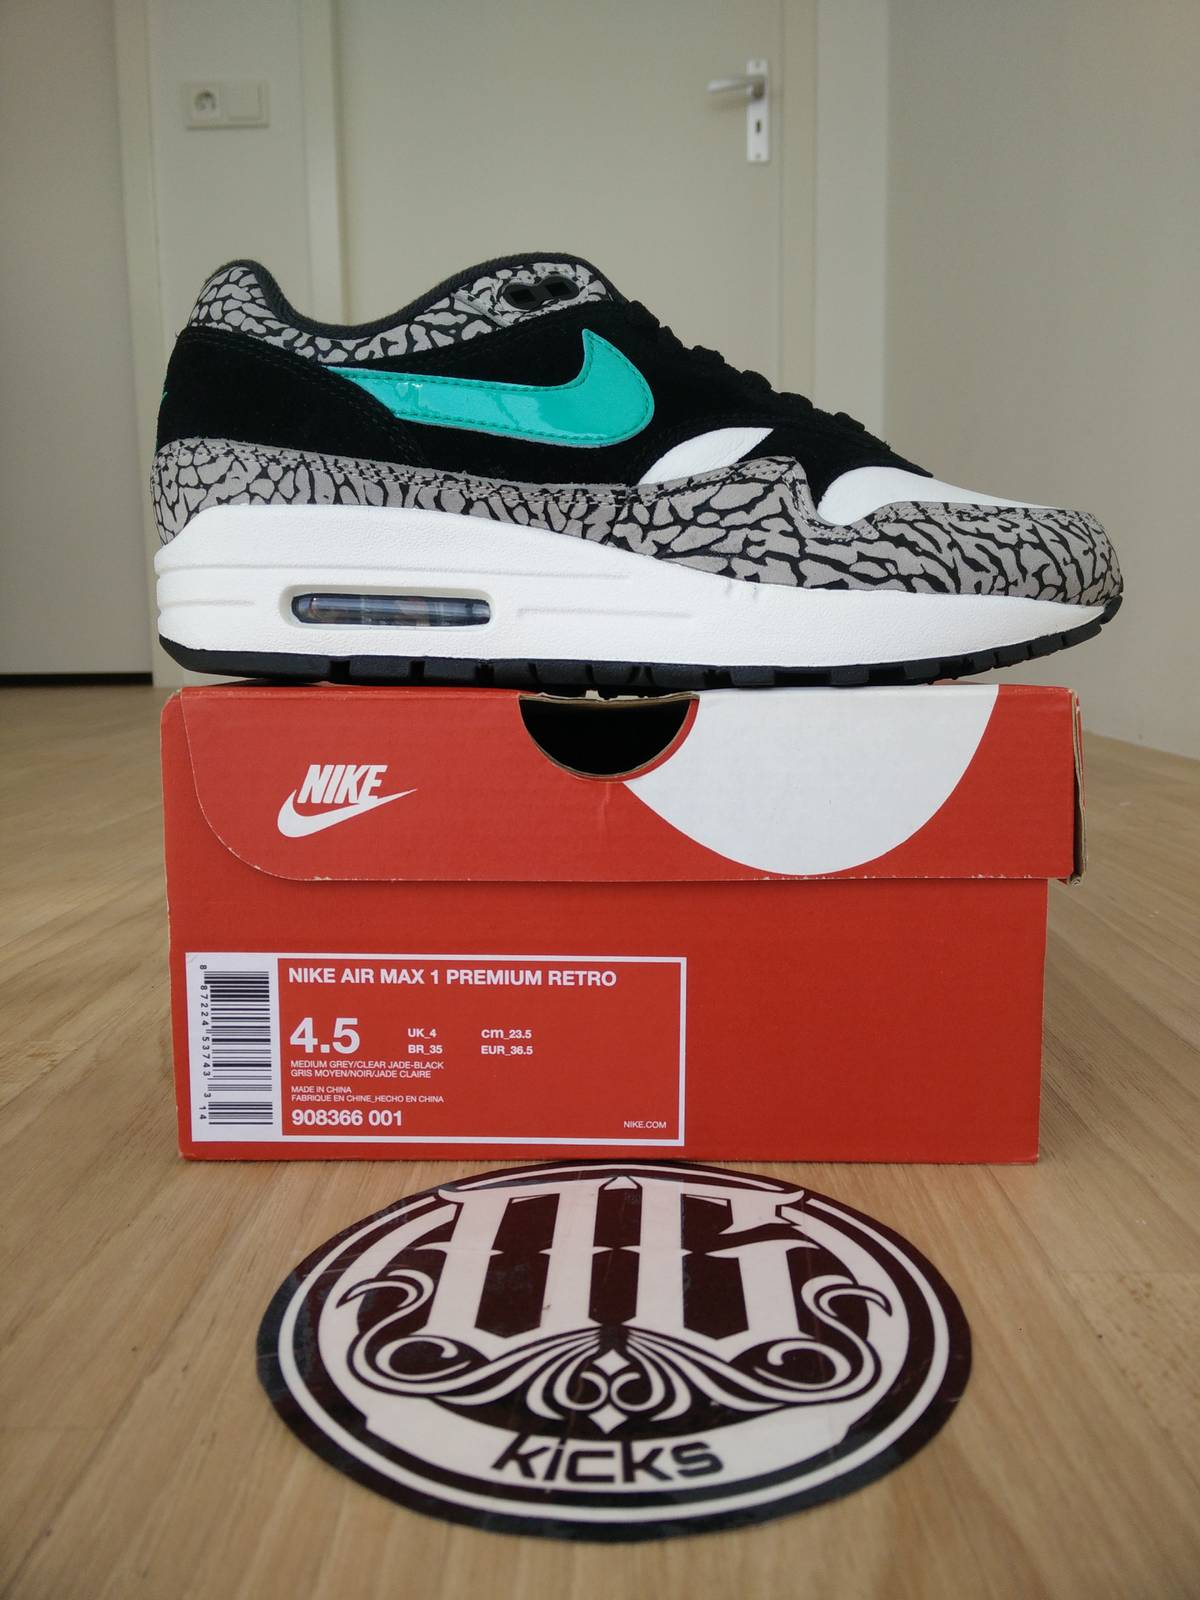 competitive price a0018 3f705 Nike Air Max 1 Atmos Elephant 2017 Sz us 4.5 - photo 1 8 ...